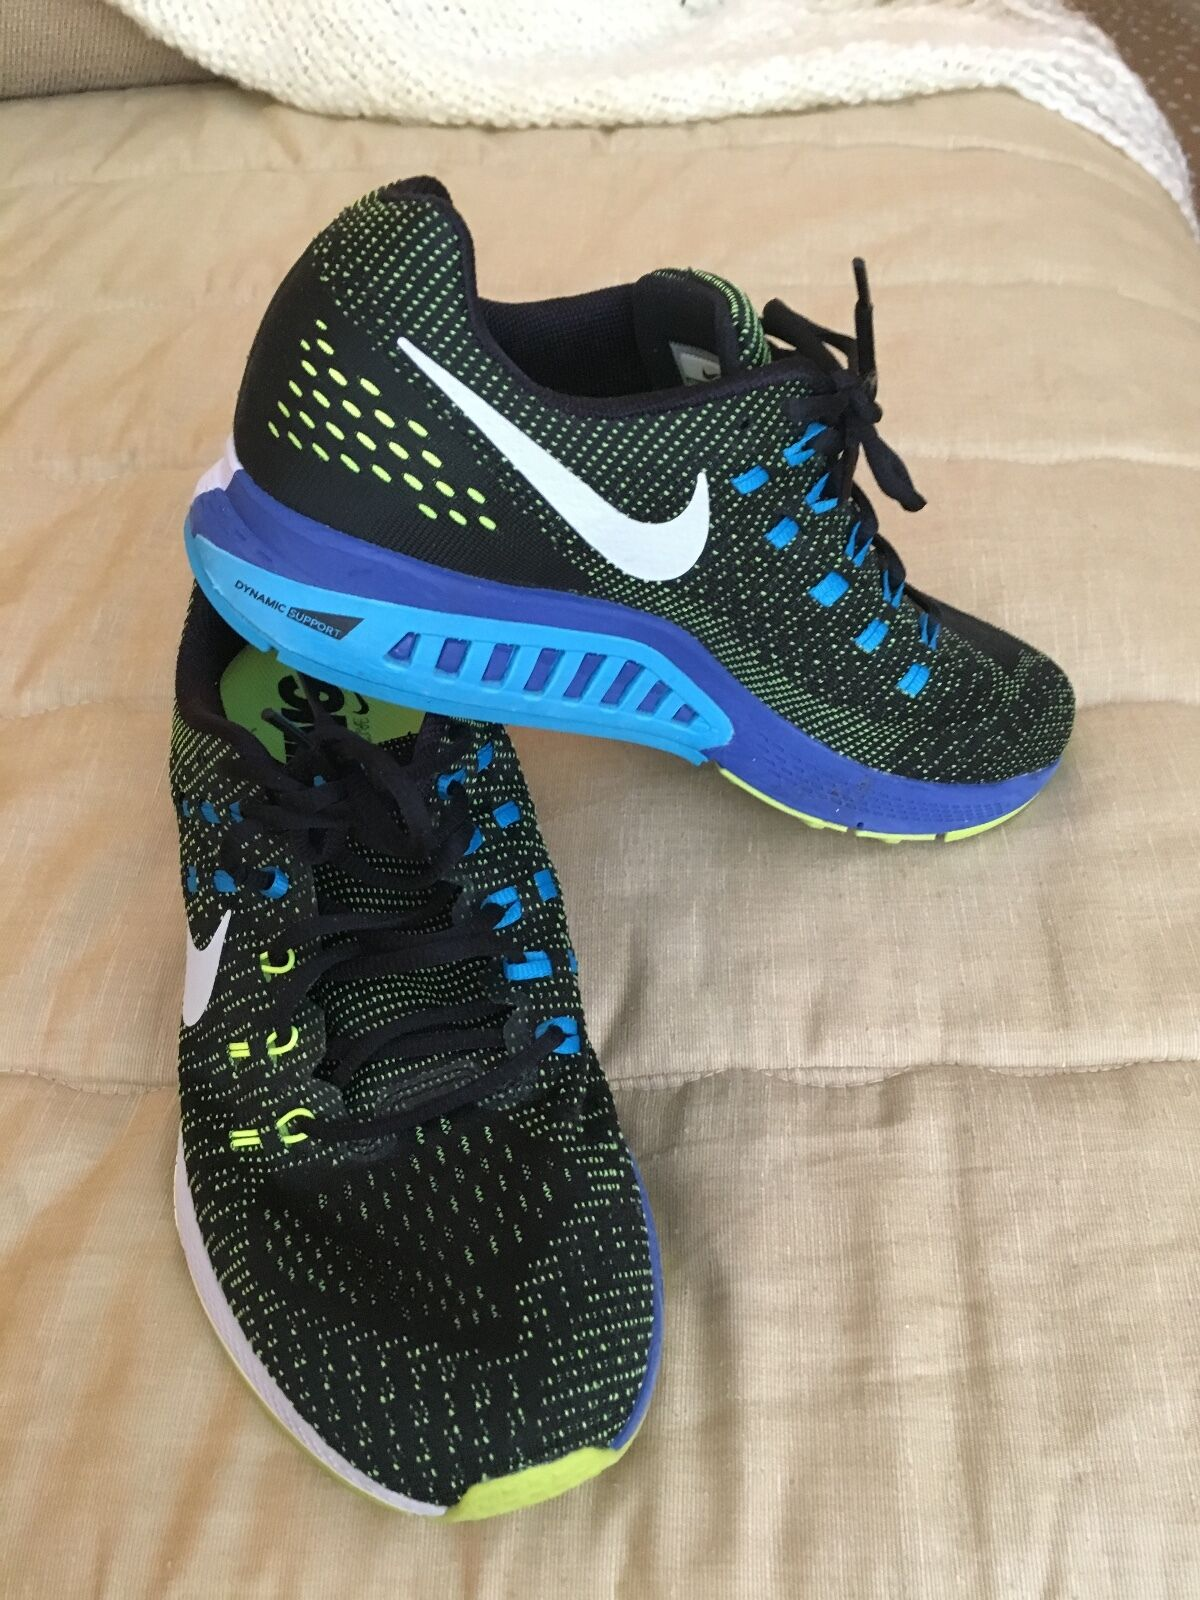 NIKE  men's size 10.5 black with worn blue  trim worn with 3x, excellent condition 90. b7ef8f